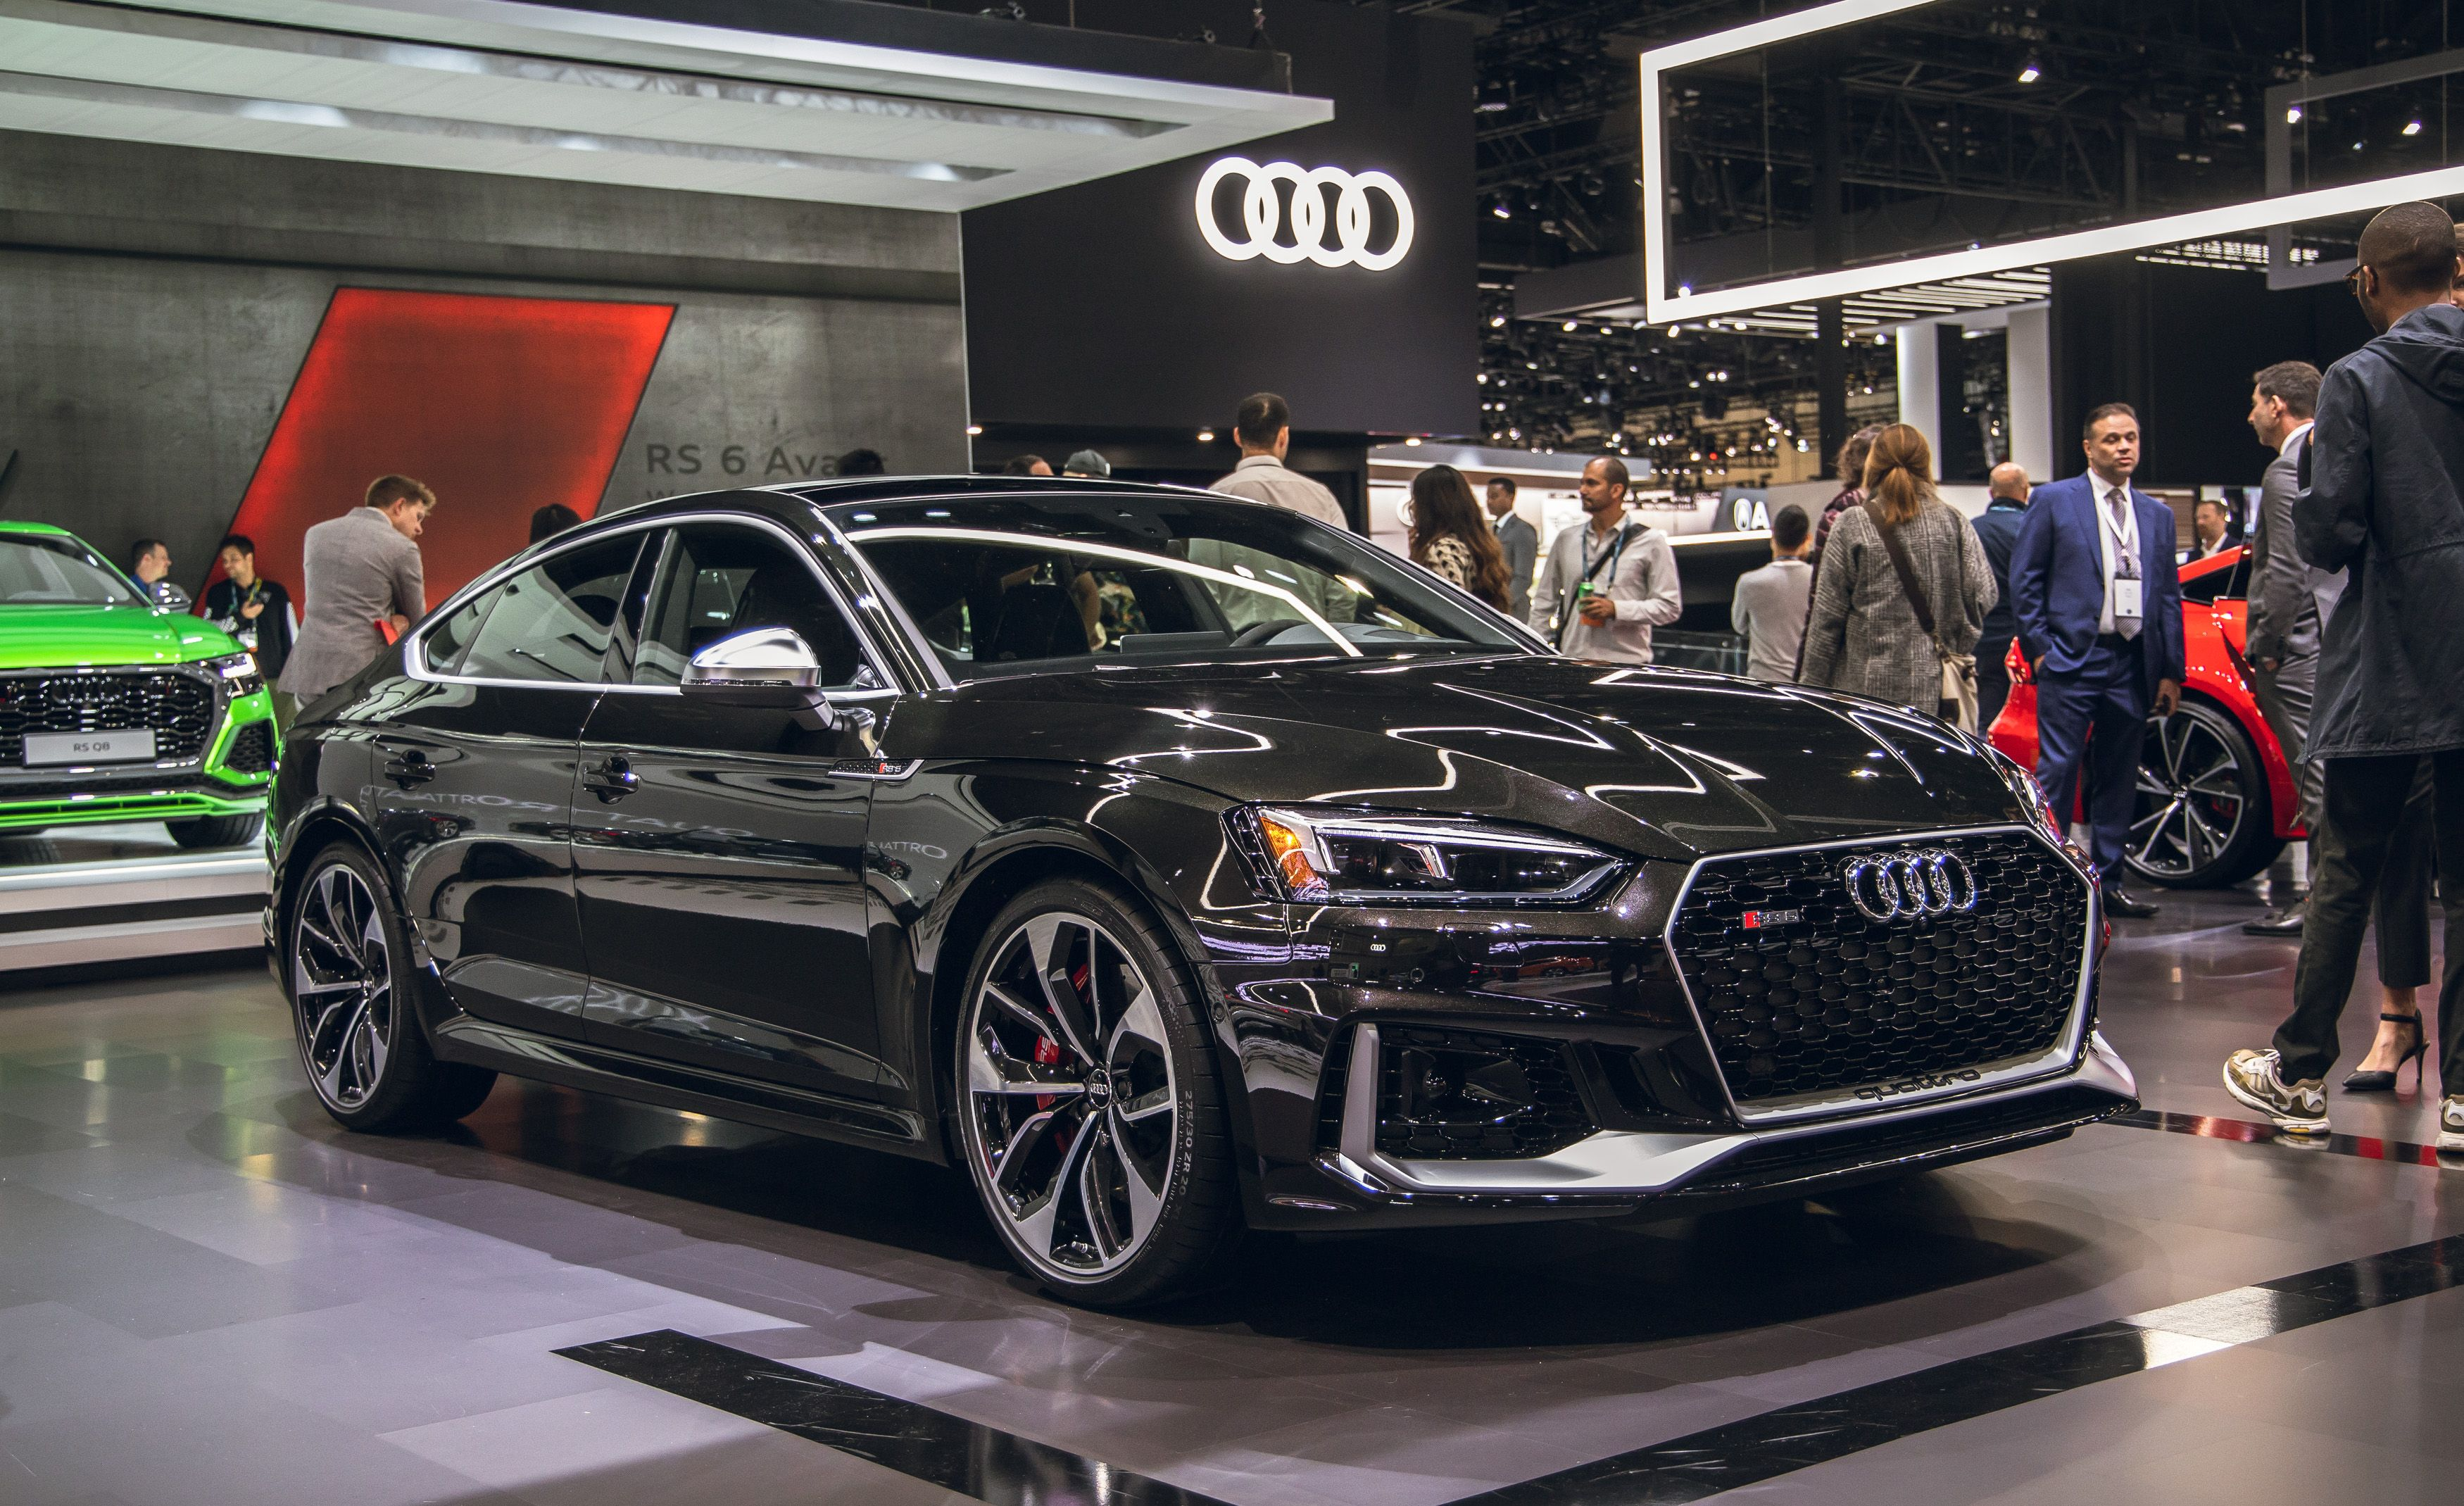 Audi Is Offering 100 Rs5s In A Stealthy Panther Edition